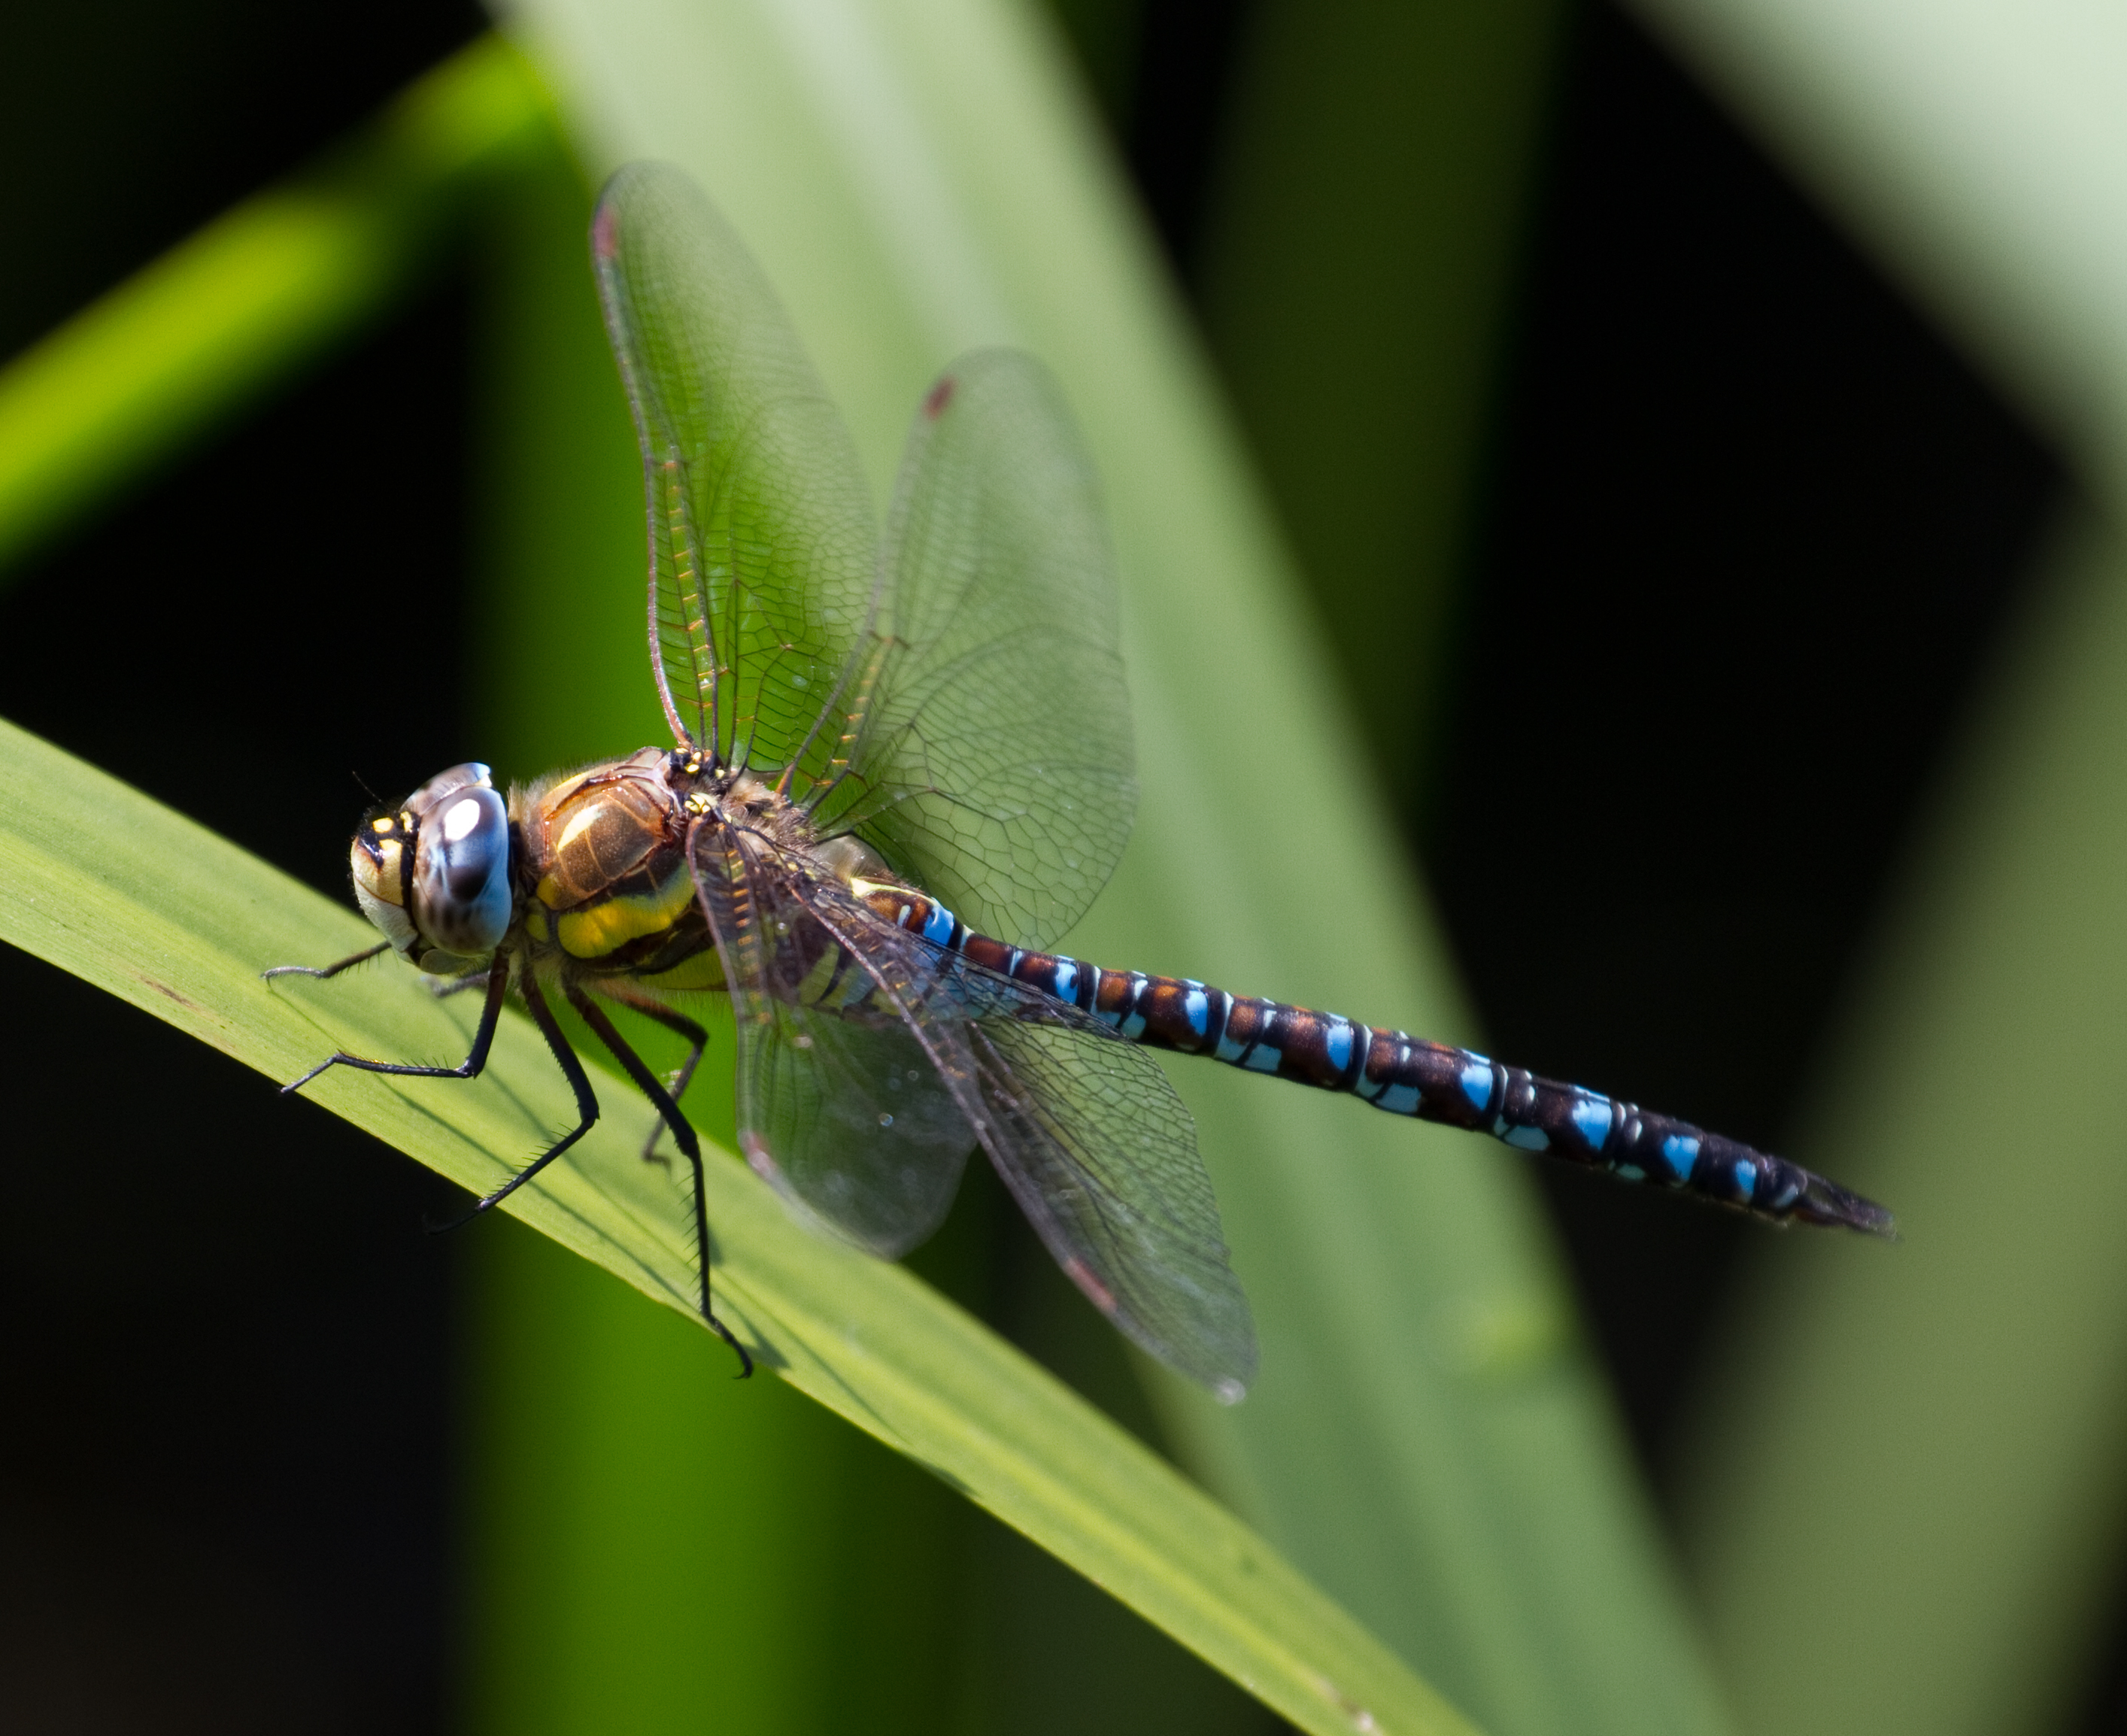 Image of a dragonfly on a leaf